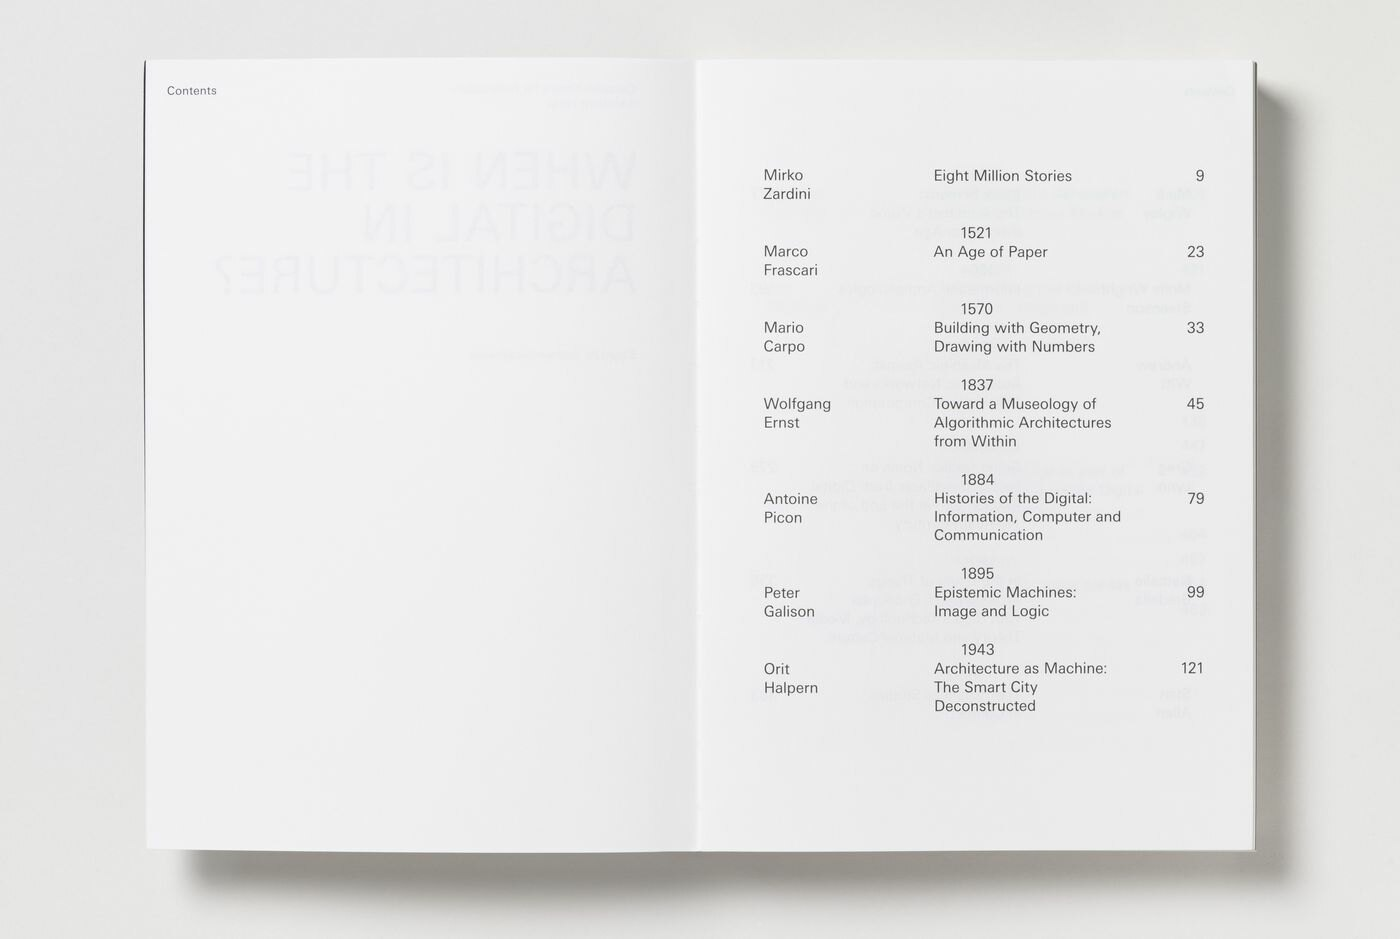 When Is the Digital in Architecture?, table of contents